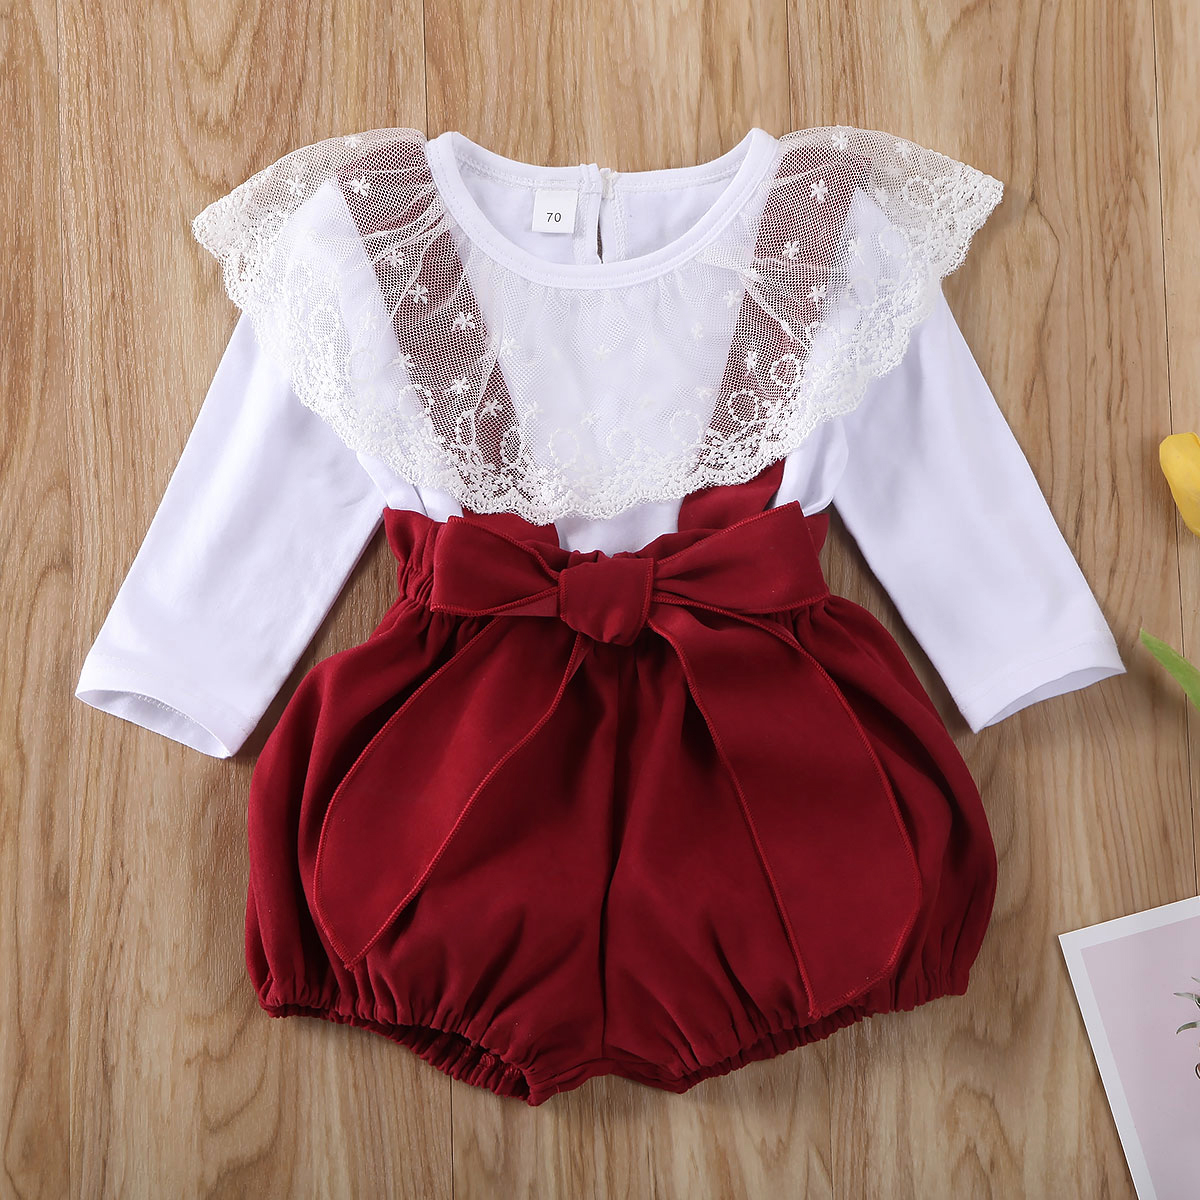 Pudcoco Newborn Baby Girl Clothes Solid Color Lace Ruffle Long Sleeve Tops Strap Shorts Overalls 2Pcs Outfits Cotton Clothes